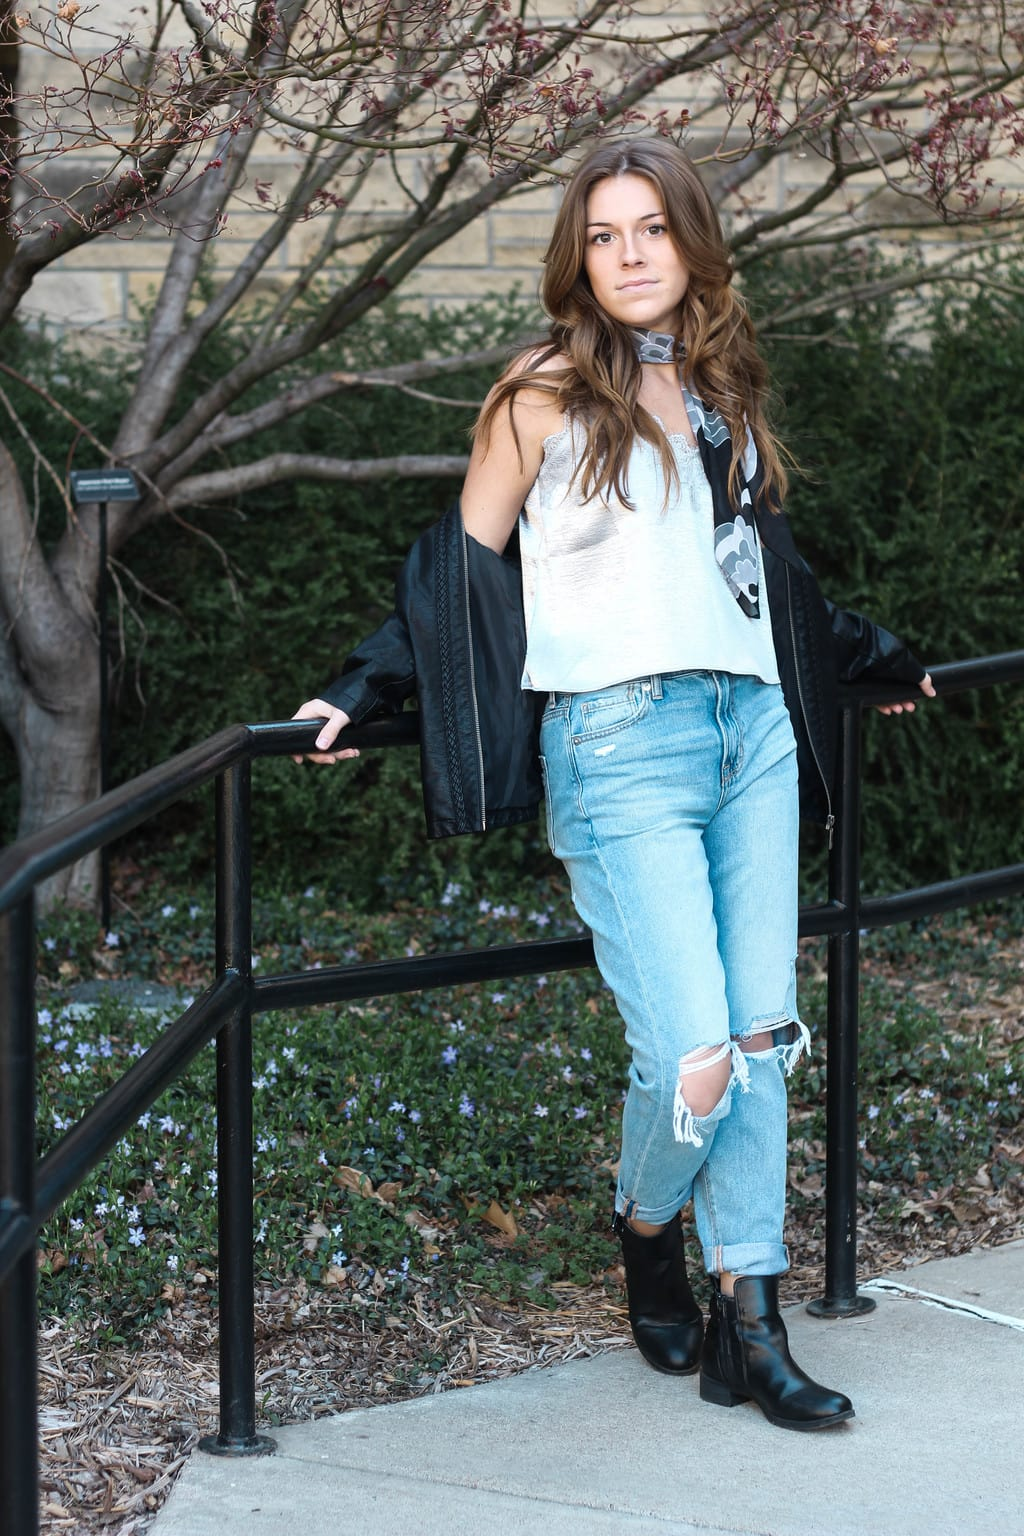 Maddie, a student at Kansas State University, wears a metallic silver slip camisole with lace trim, a pair of baggy distressed light-wash denim boyfriend jeans, flat black Chelsea booties, a leather jacket, and a grey and black scarf tied as an ascot.